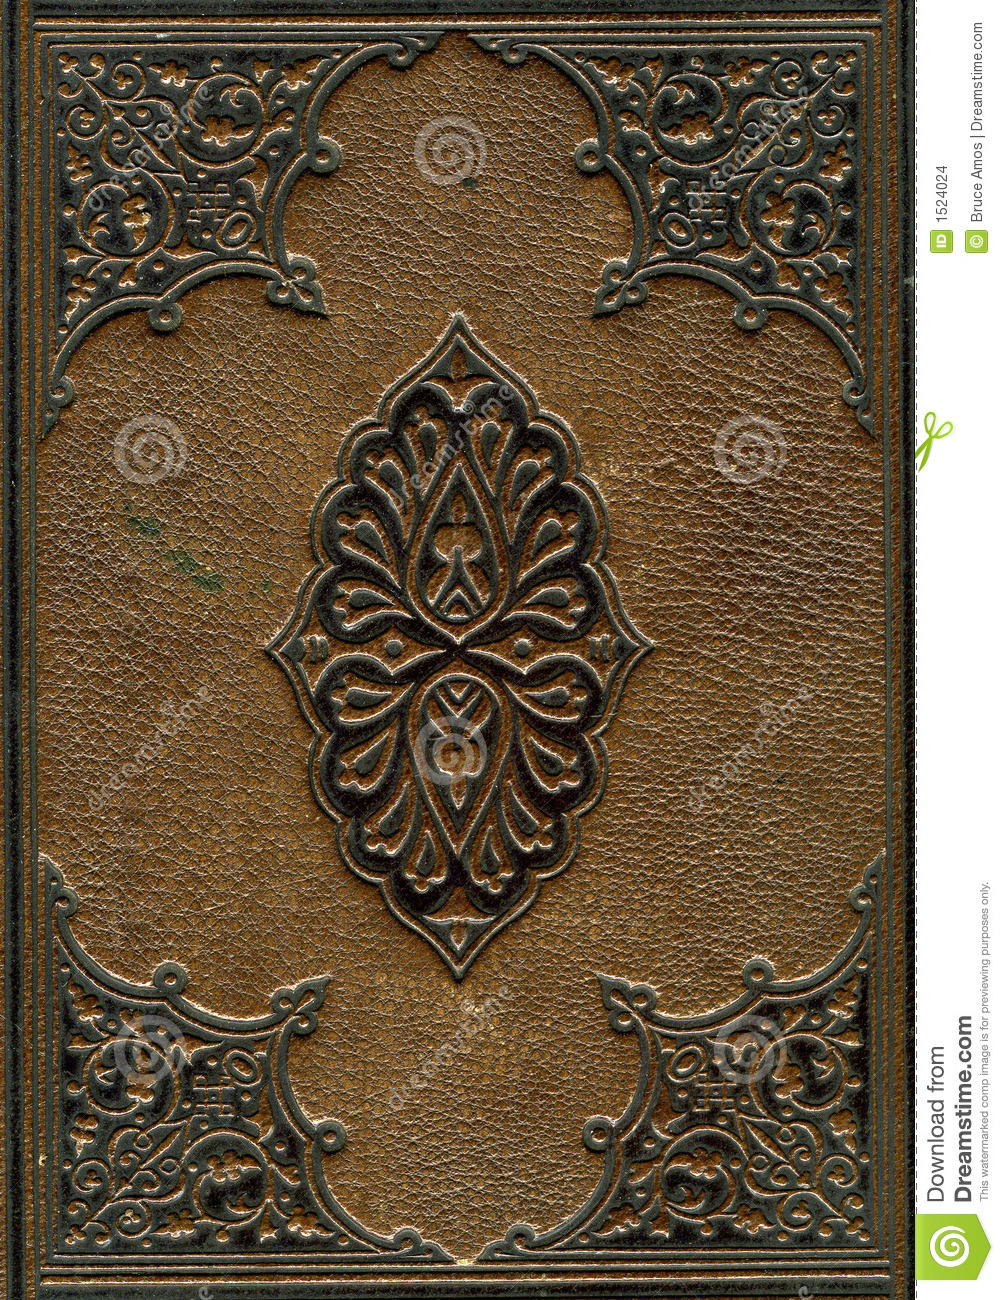 Old Book Cover Photo Tutorial : Old leather bound bible stock photo image of stain paper